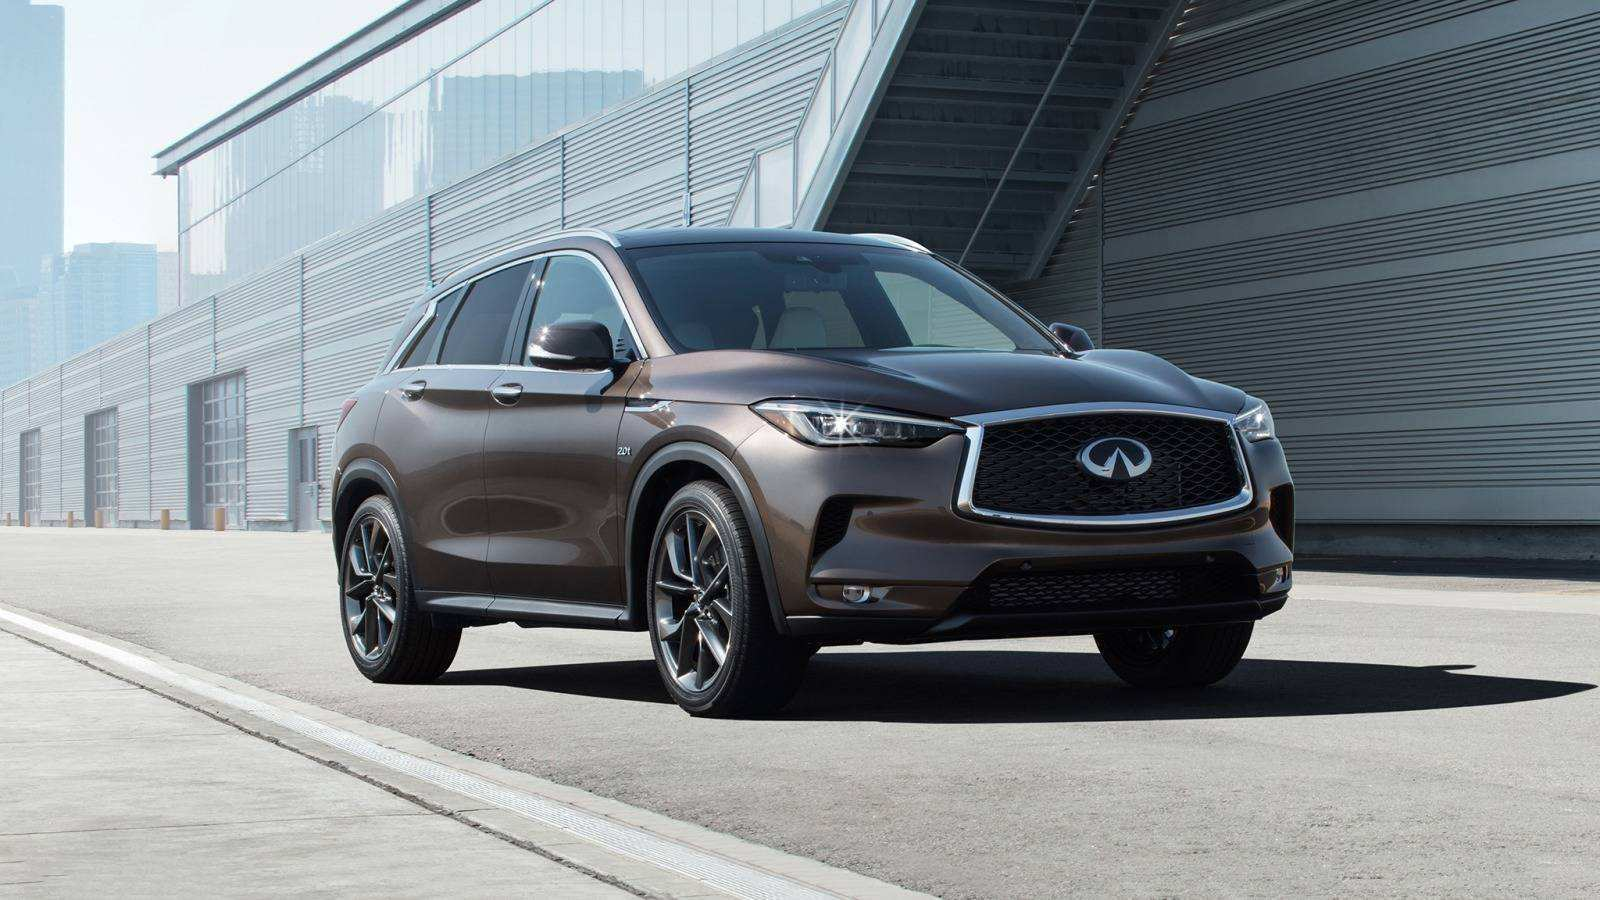 57 The Infiniti Qx50 2019 Images Overview And Price Research New for Infiniti Qx50 2019 Images Overview And Price